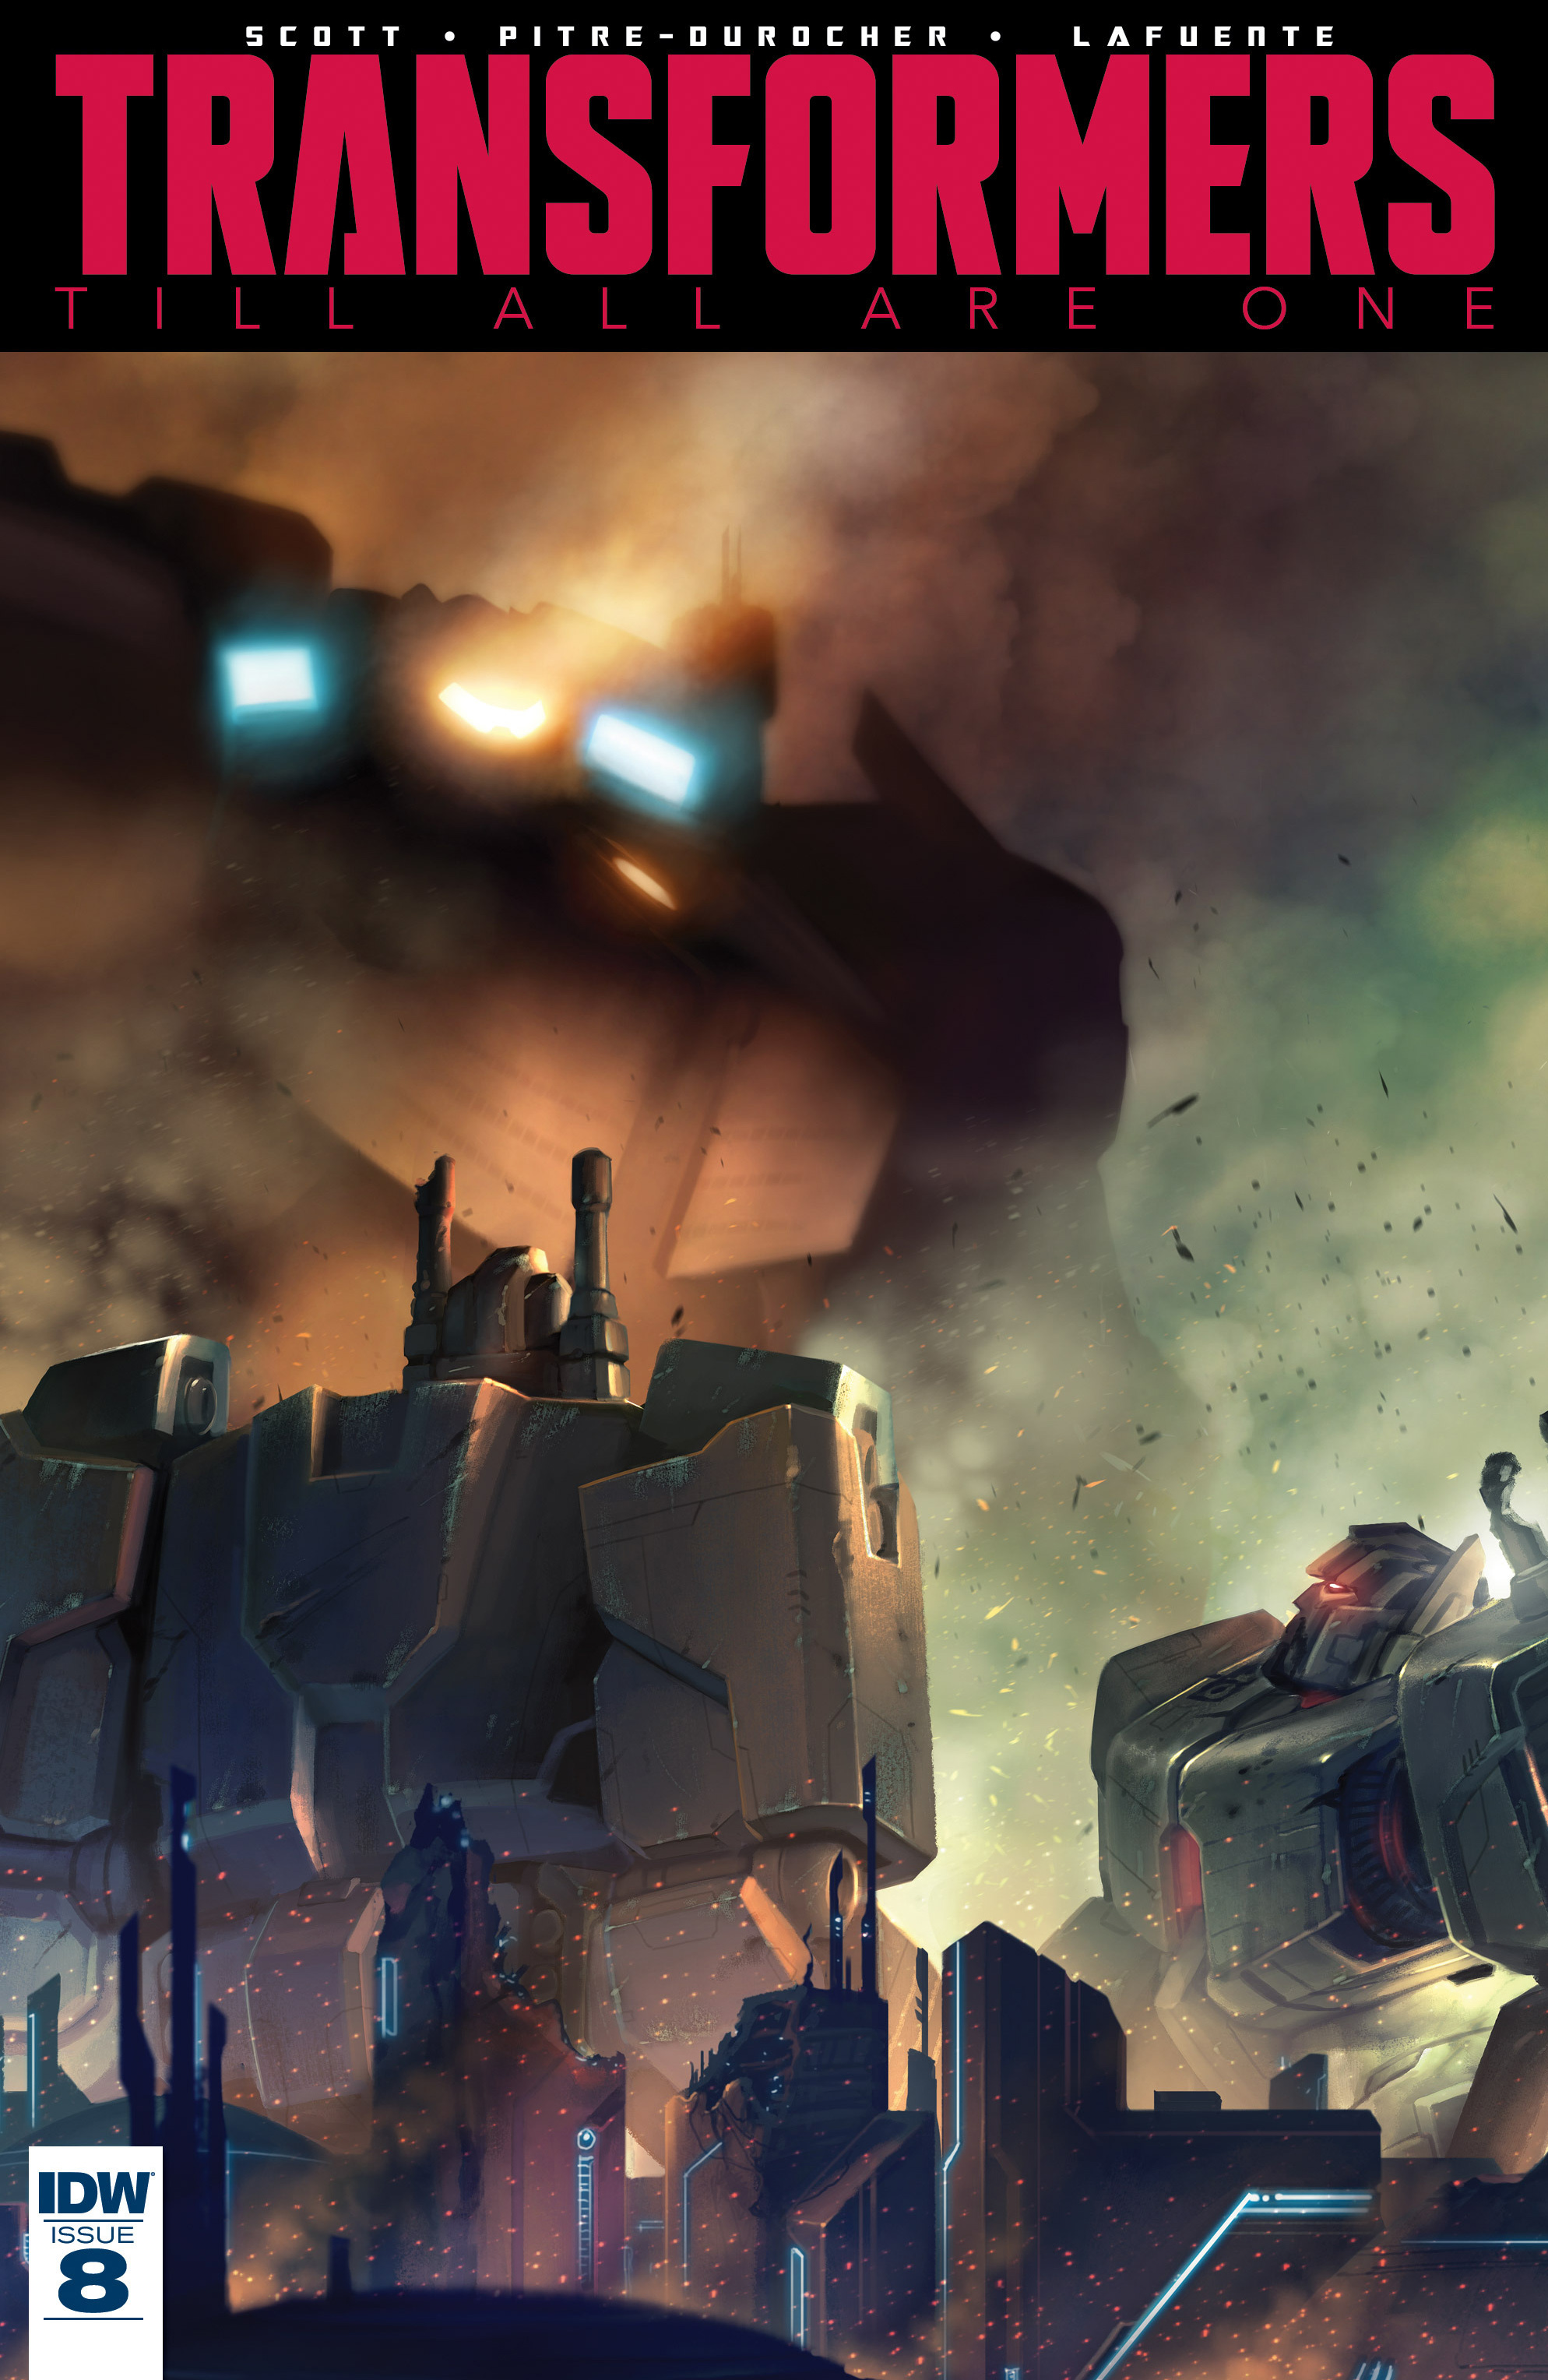 Read online Transformers: Till All Are One comic -  Issue #8 - 1